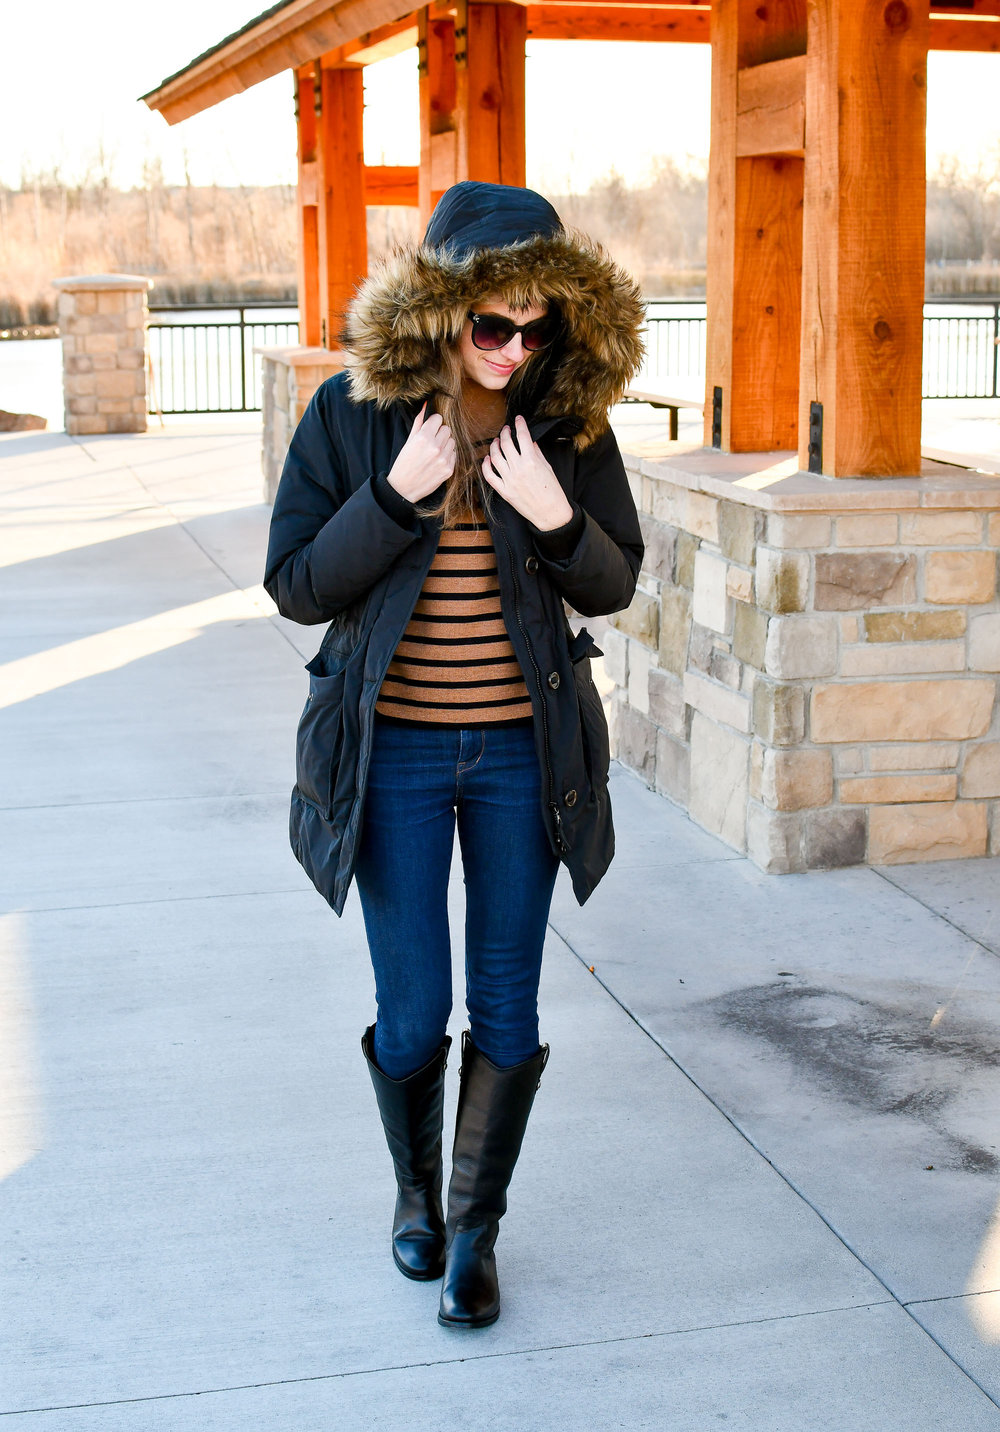 Black puffy parka outfit with striped sweater — Cotton Cashmere Cat Hair